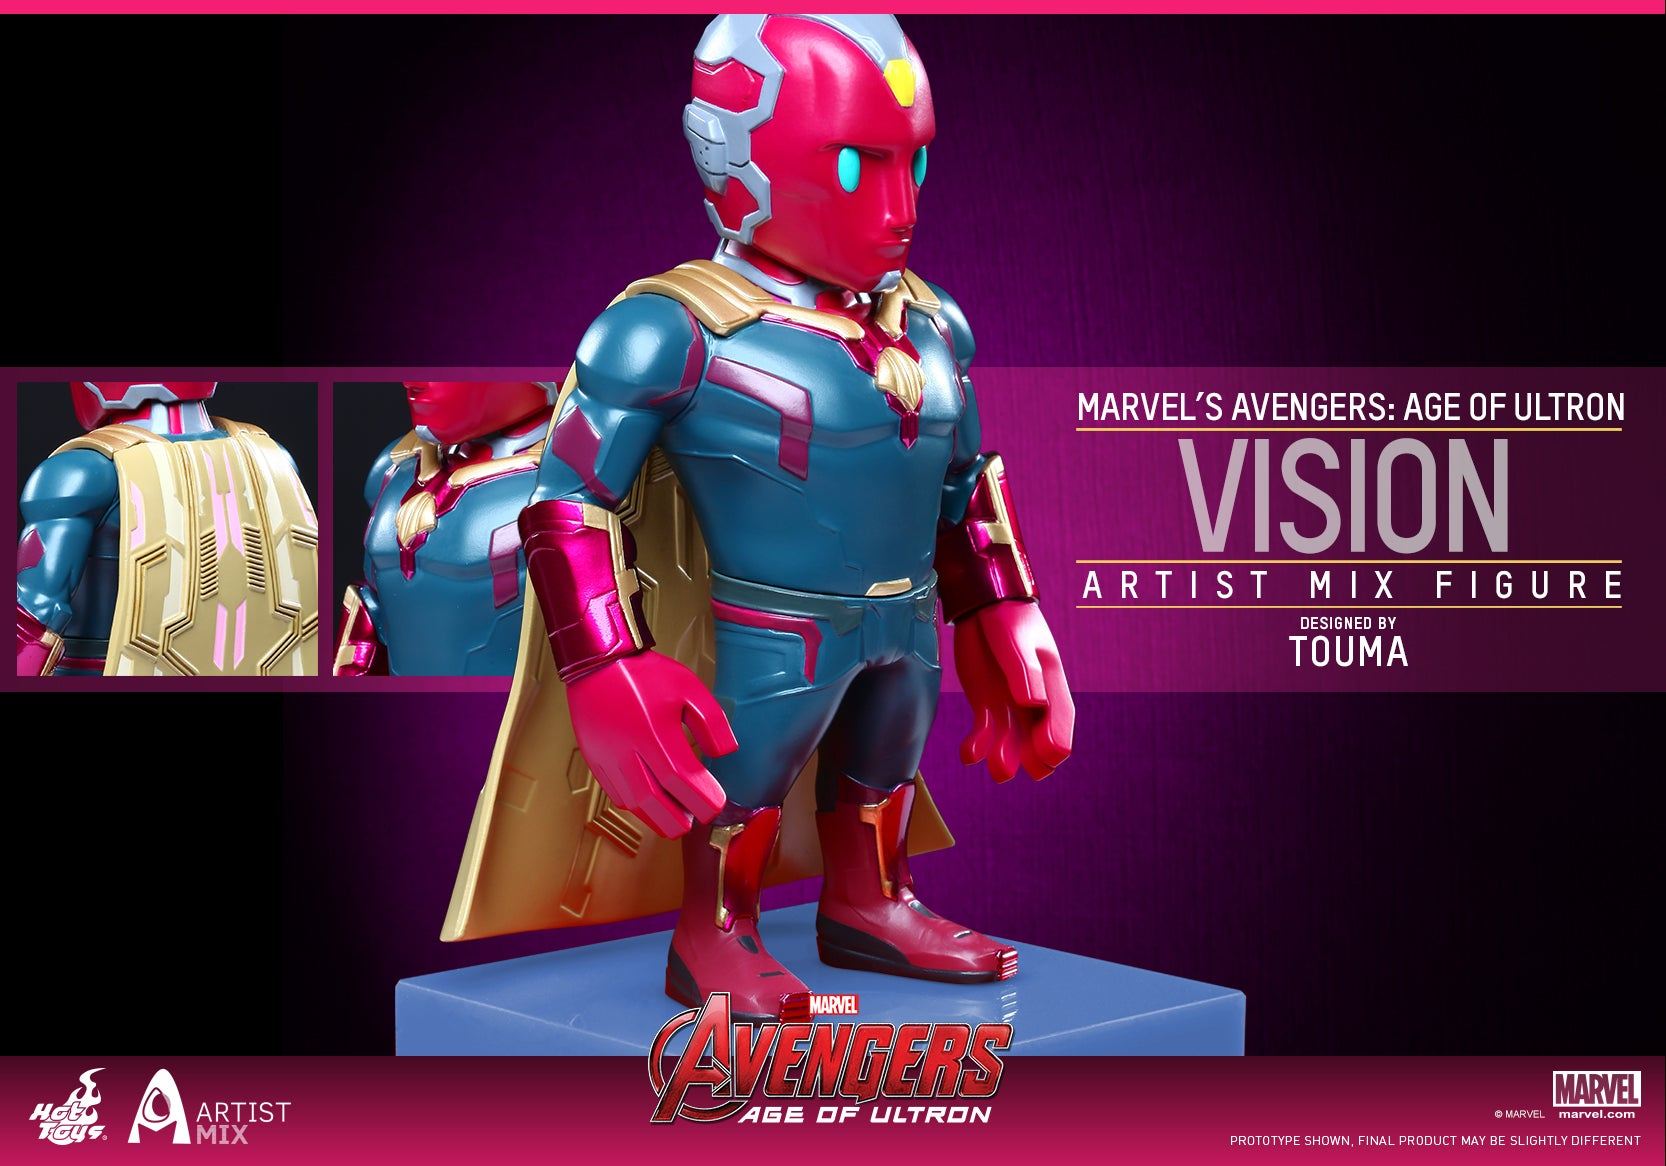 Hot Toys - Avengers - Age of Ultron - Artist Mix Figures Designed by TOUMA (Series 2)_PR10